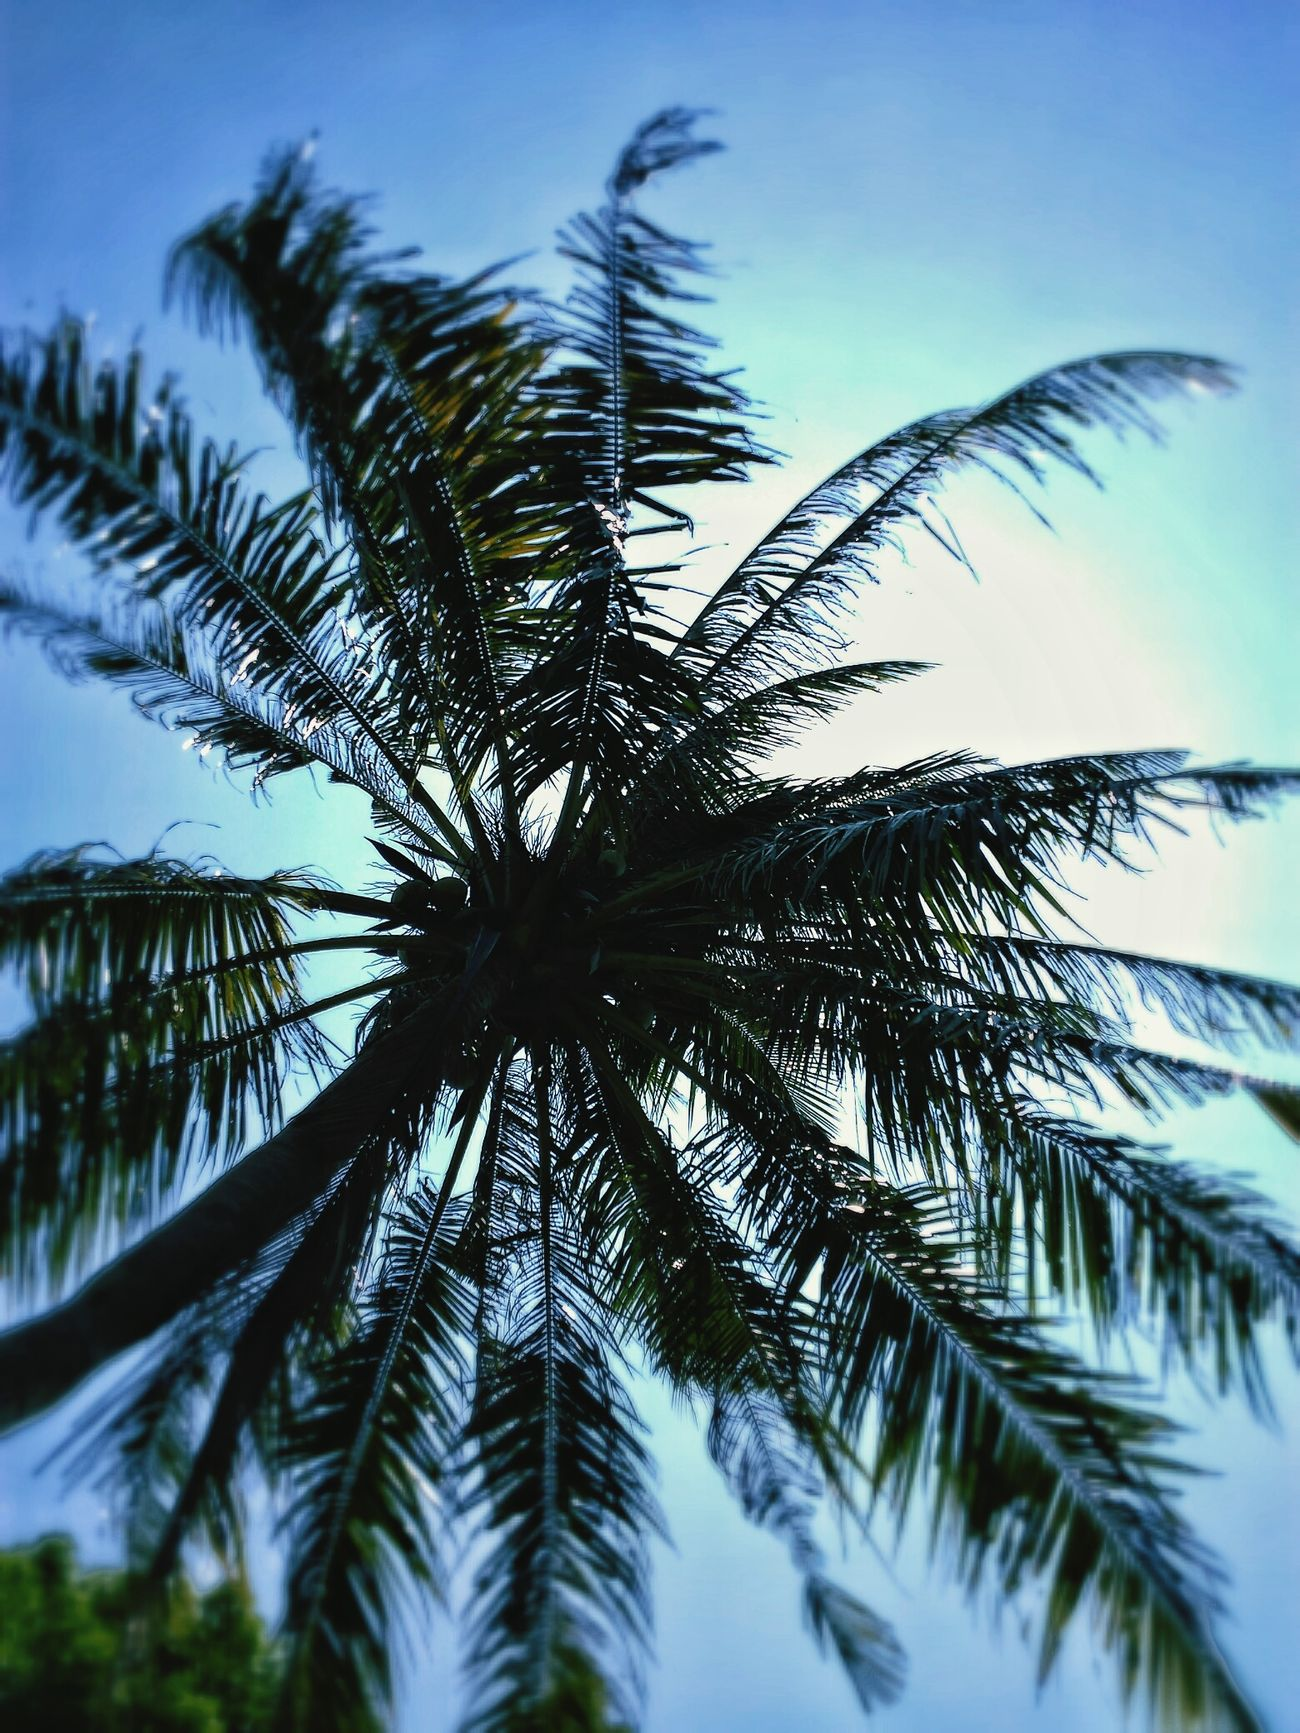 Coconuttree Beachphotography Anyerbeach Lenovos90 Lenovosisley